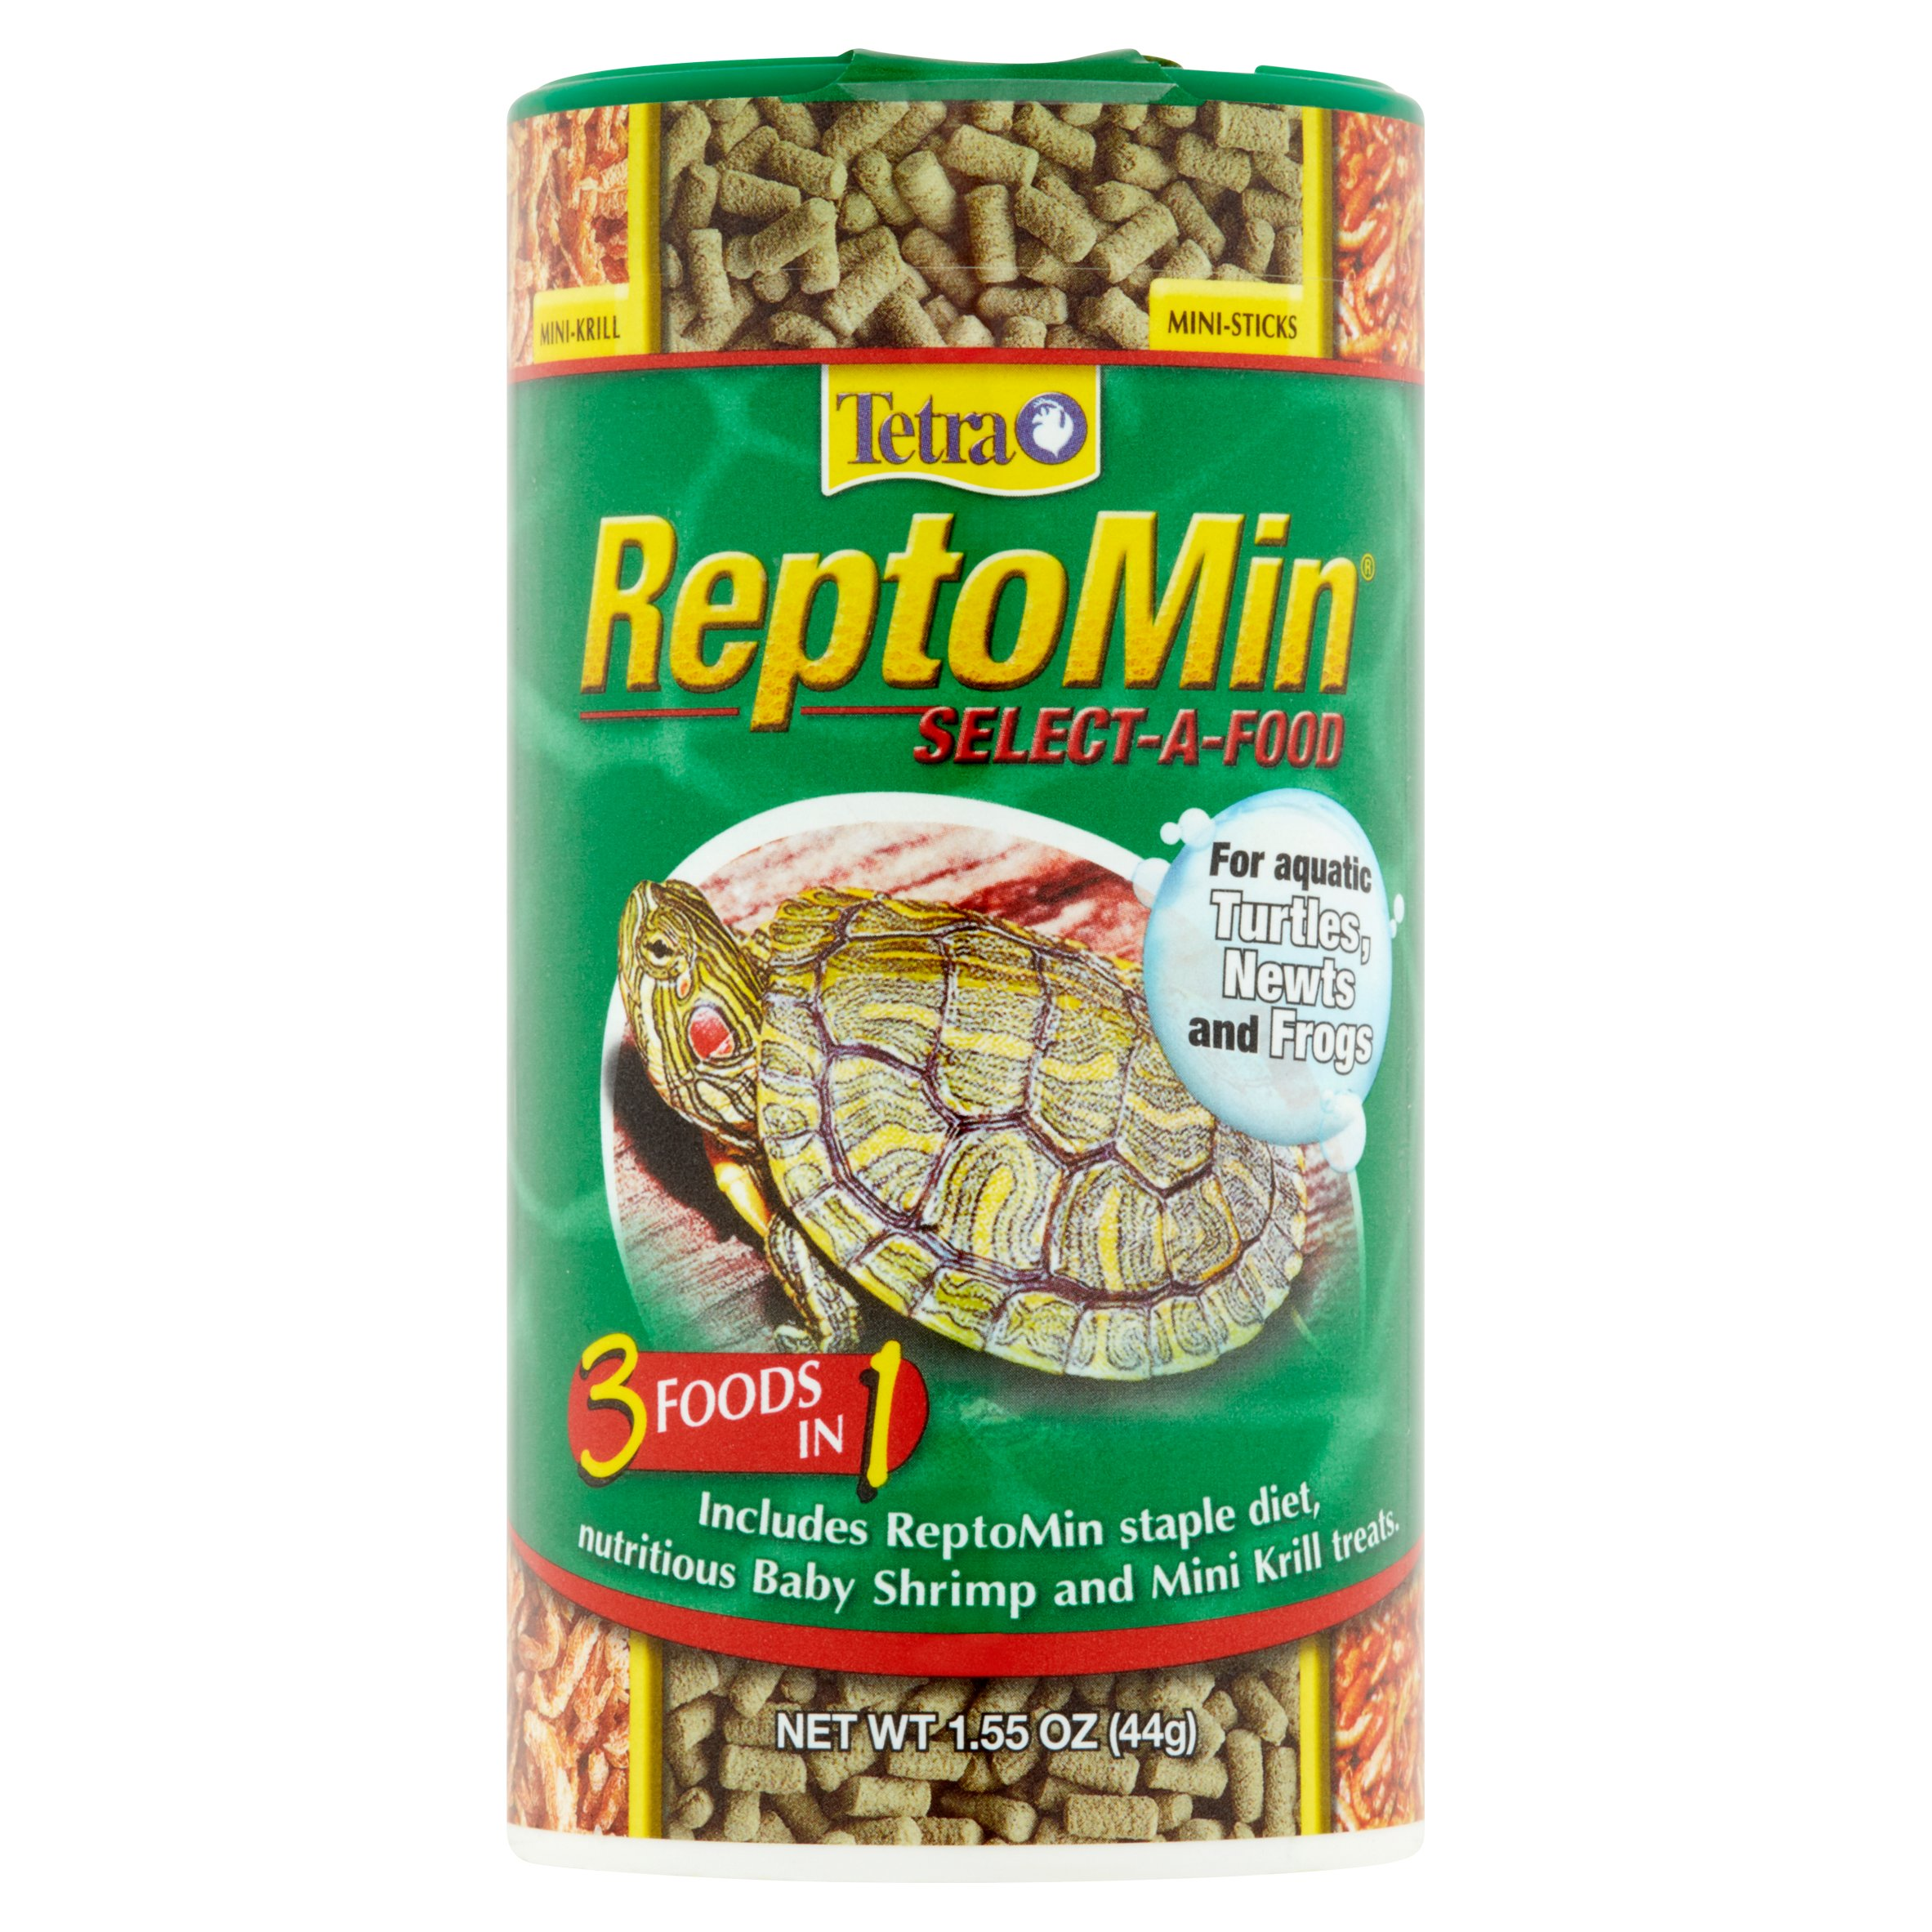 Tetra ReptoMin Select-A-Food 3 in 1 For Turtles, Newts & Frogs